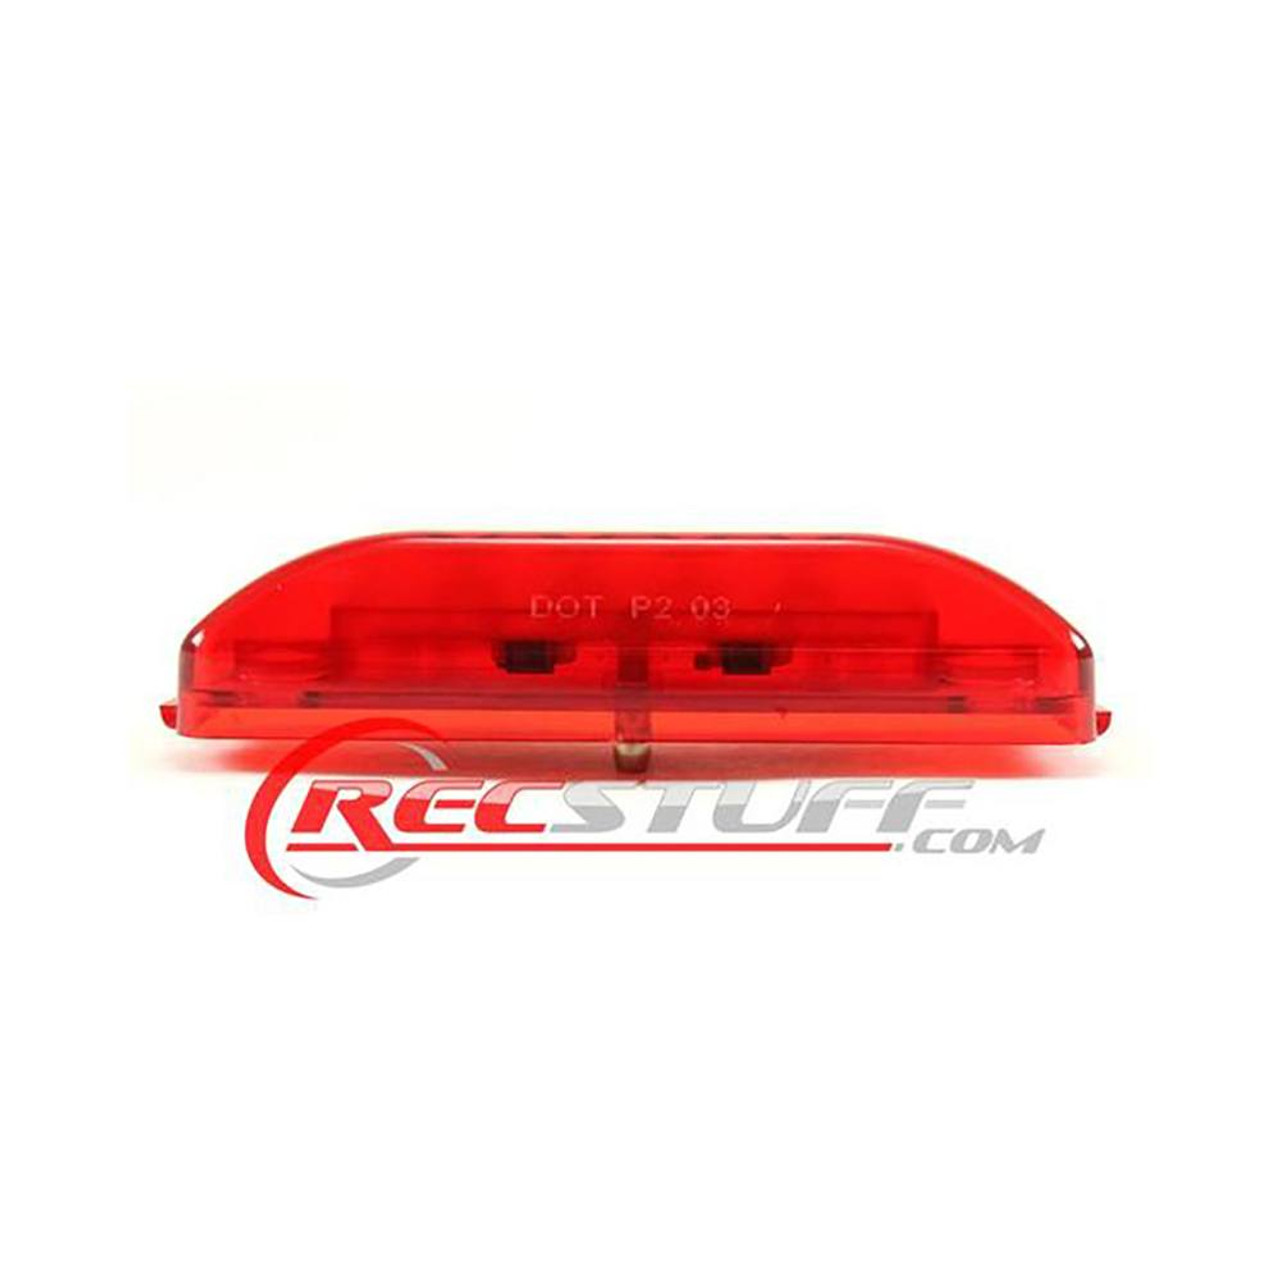 Large Red LED Clearance Light - Snap Lock